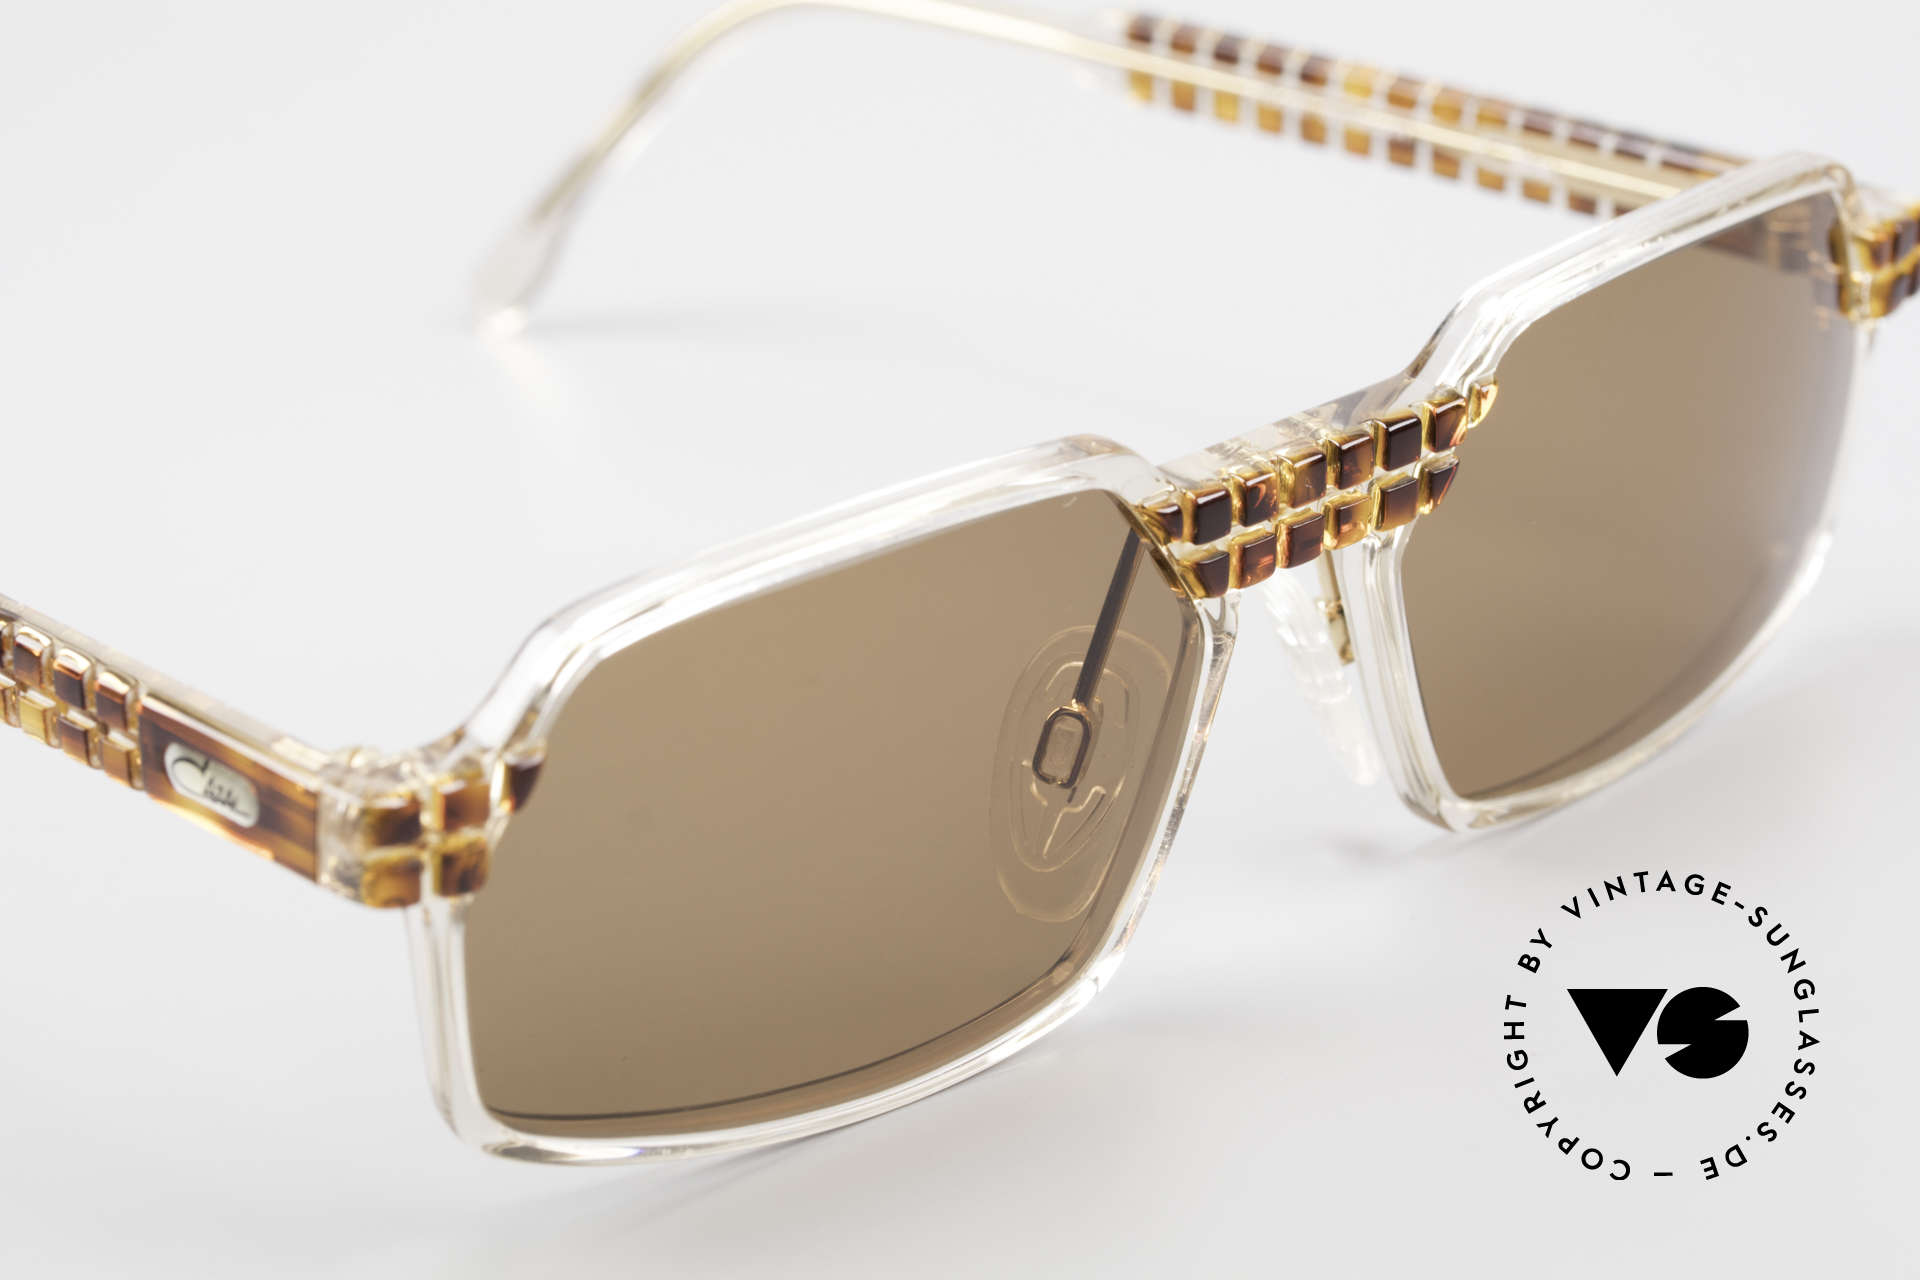 Cazal 511 Limited 90's Cazal Sunglasses, unworn (like all our rare vintage Cazal Crystal frames), Made for Men and Women